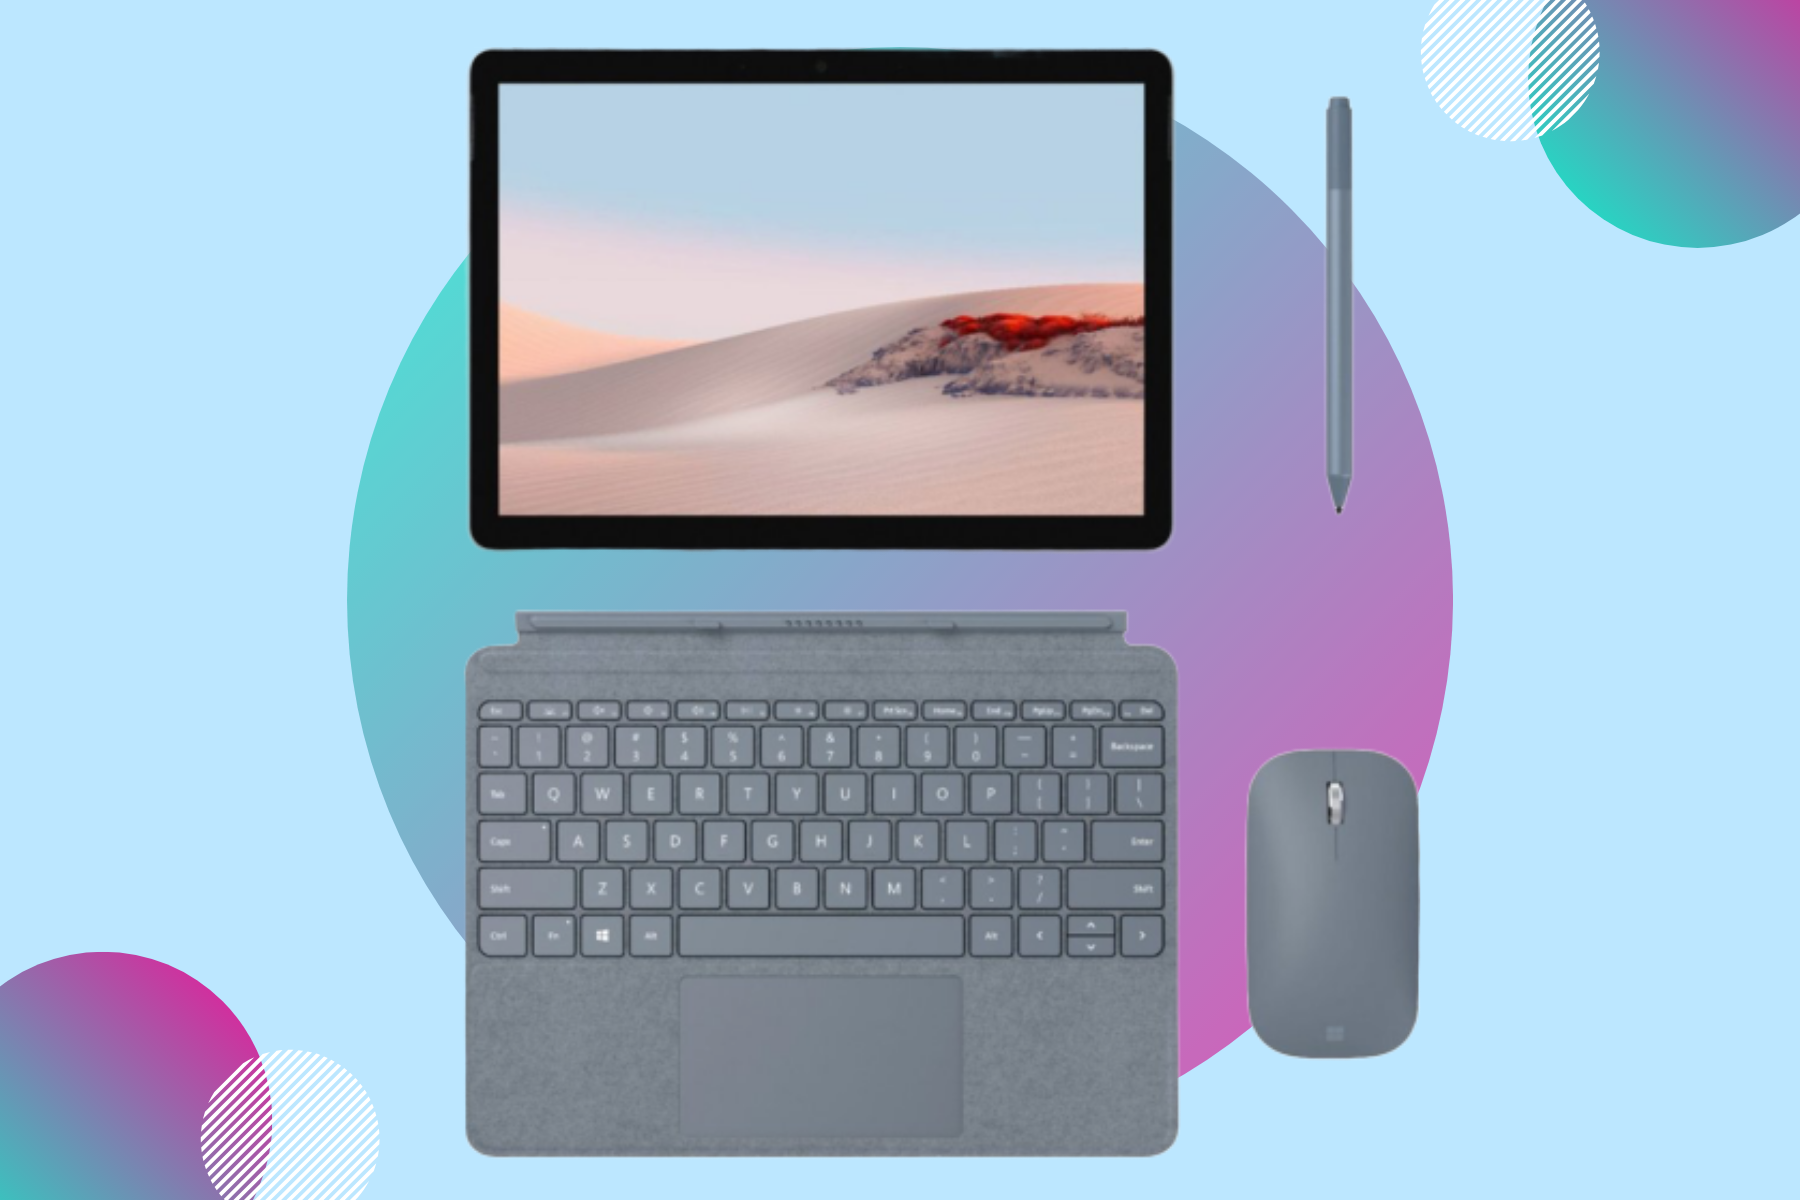 Best Laptops For Kids 2020 Samsung Microsoft Top For School And Play